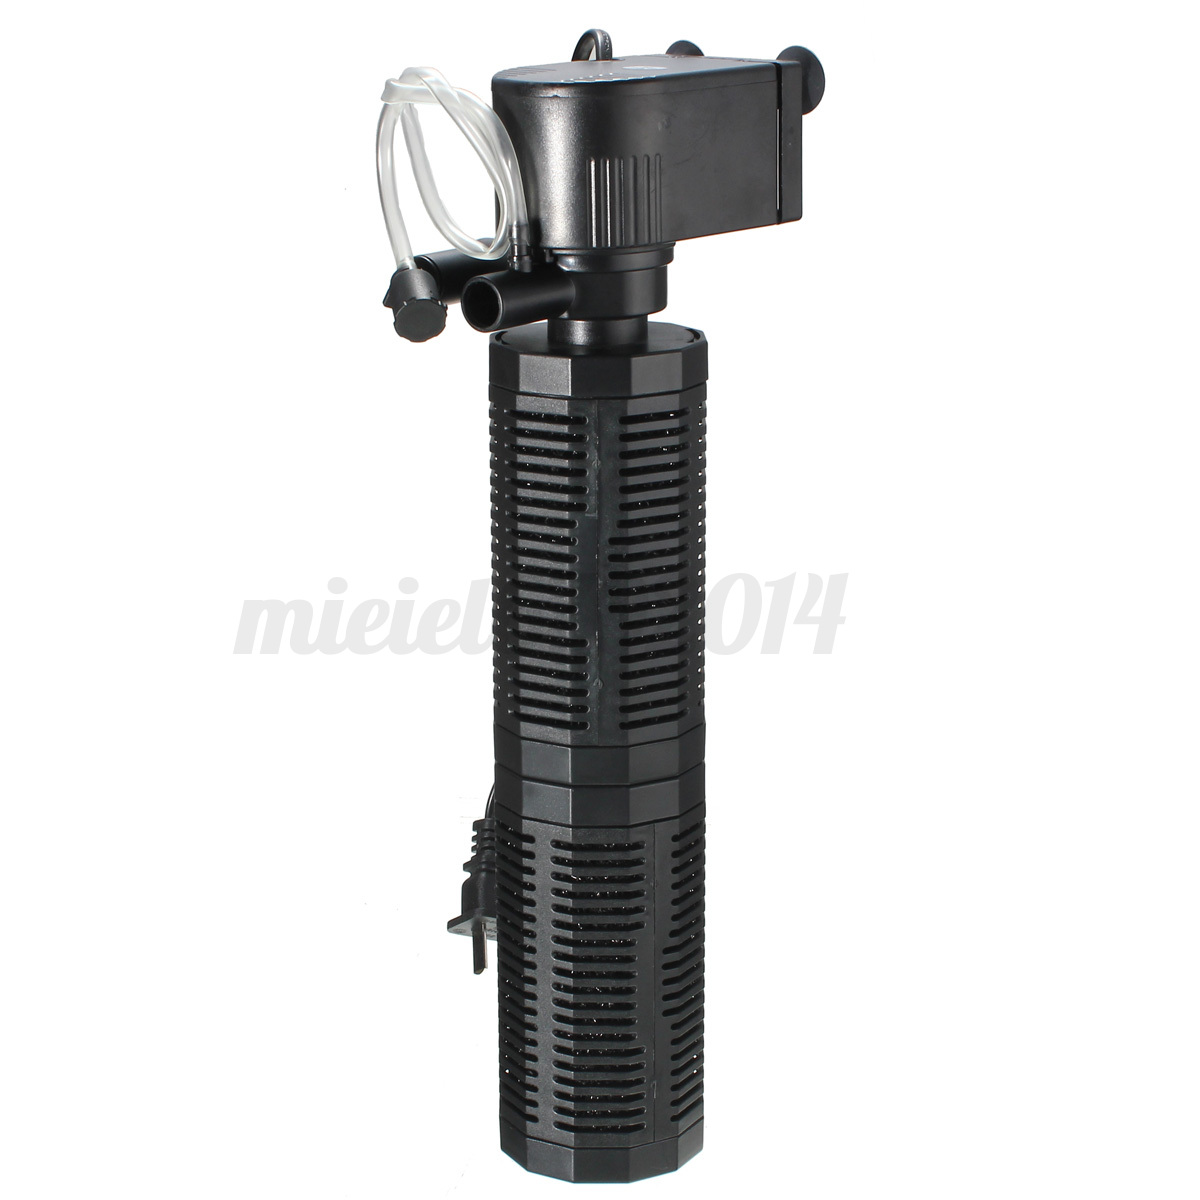 3 model submersible aquarium internal filter water pump f for Submersible pond pump and filter